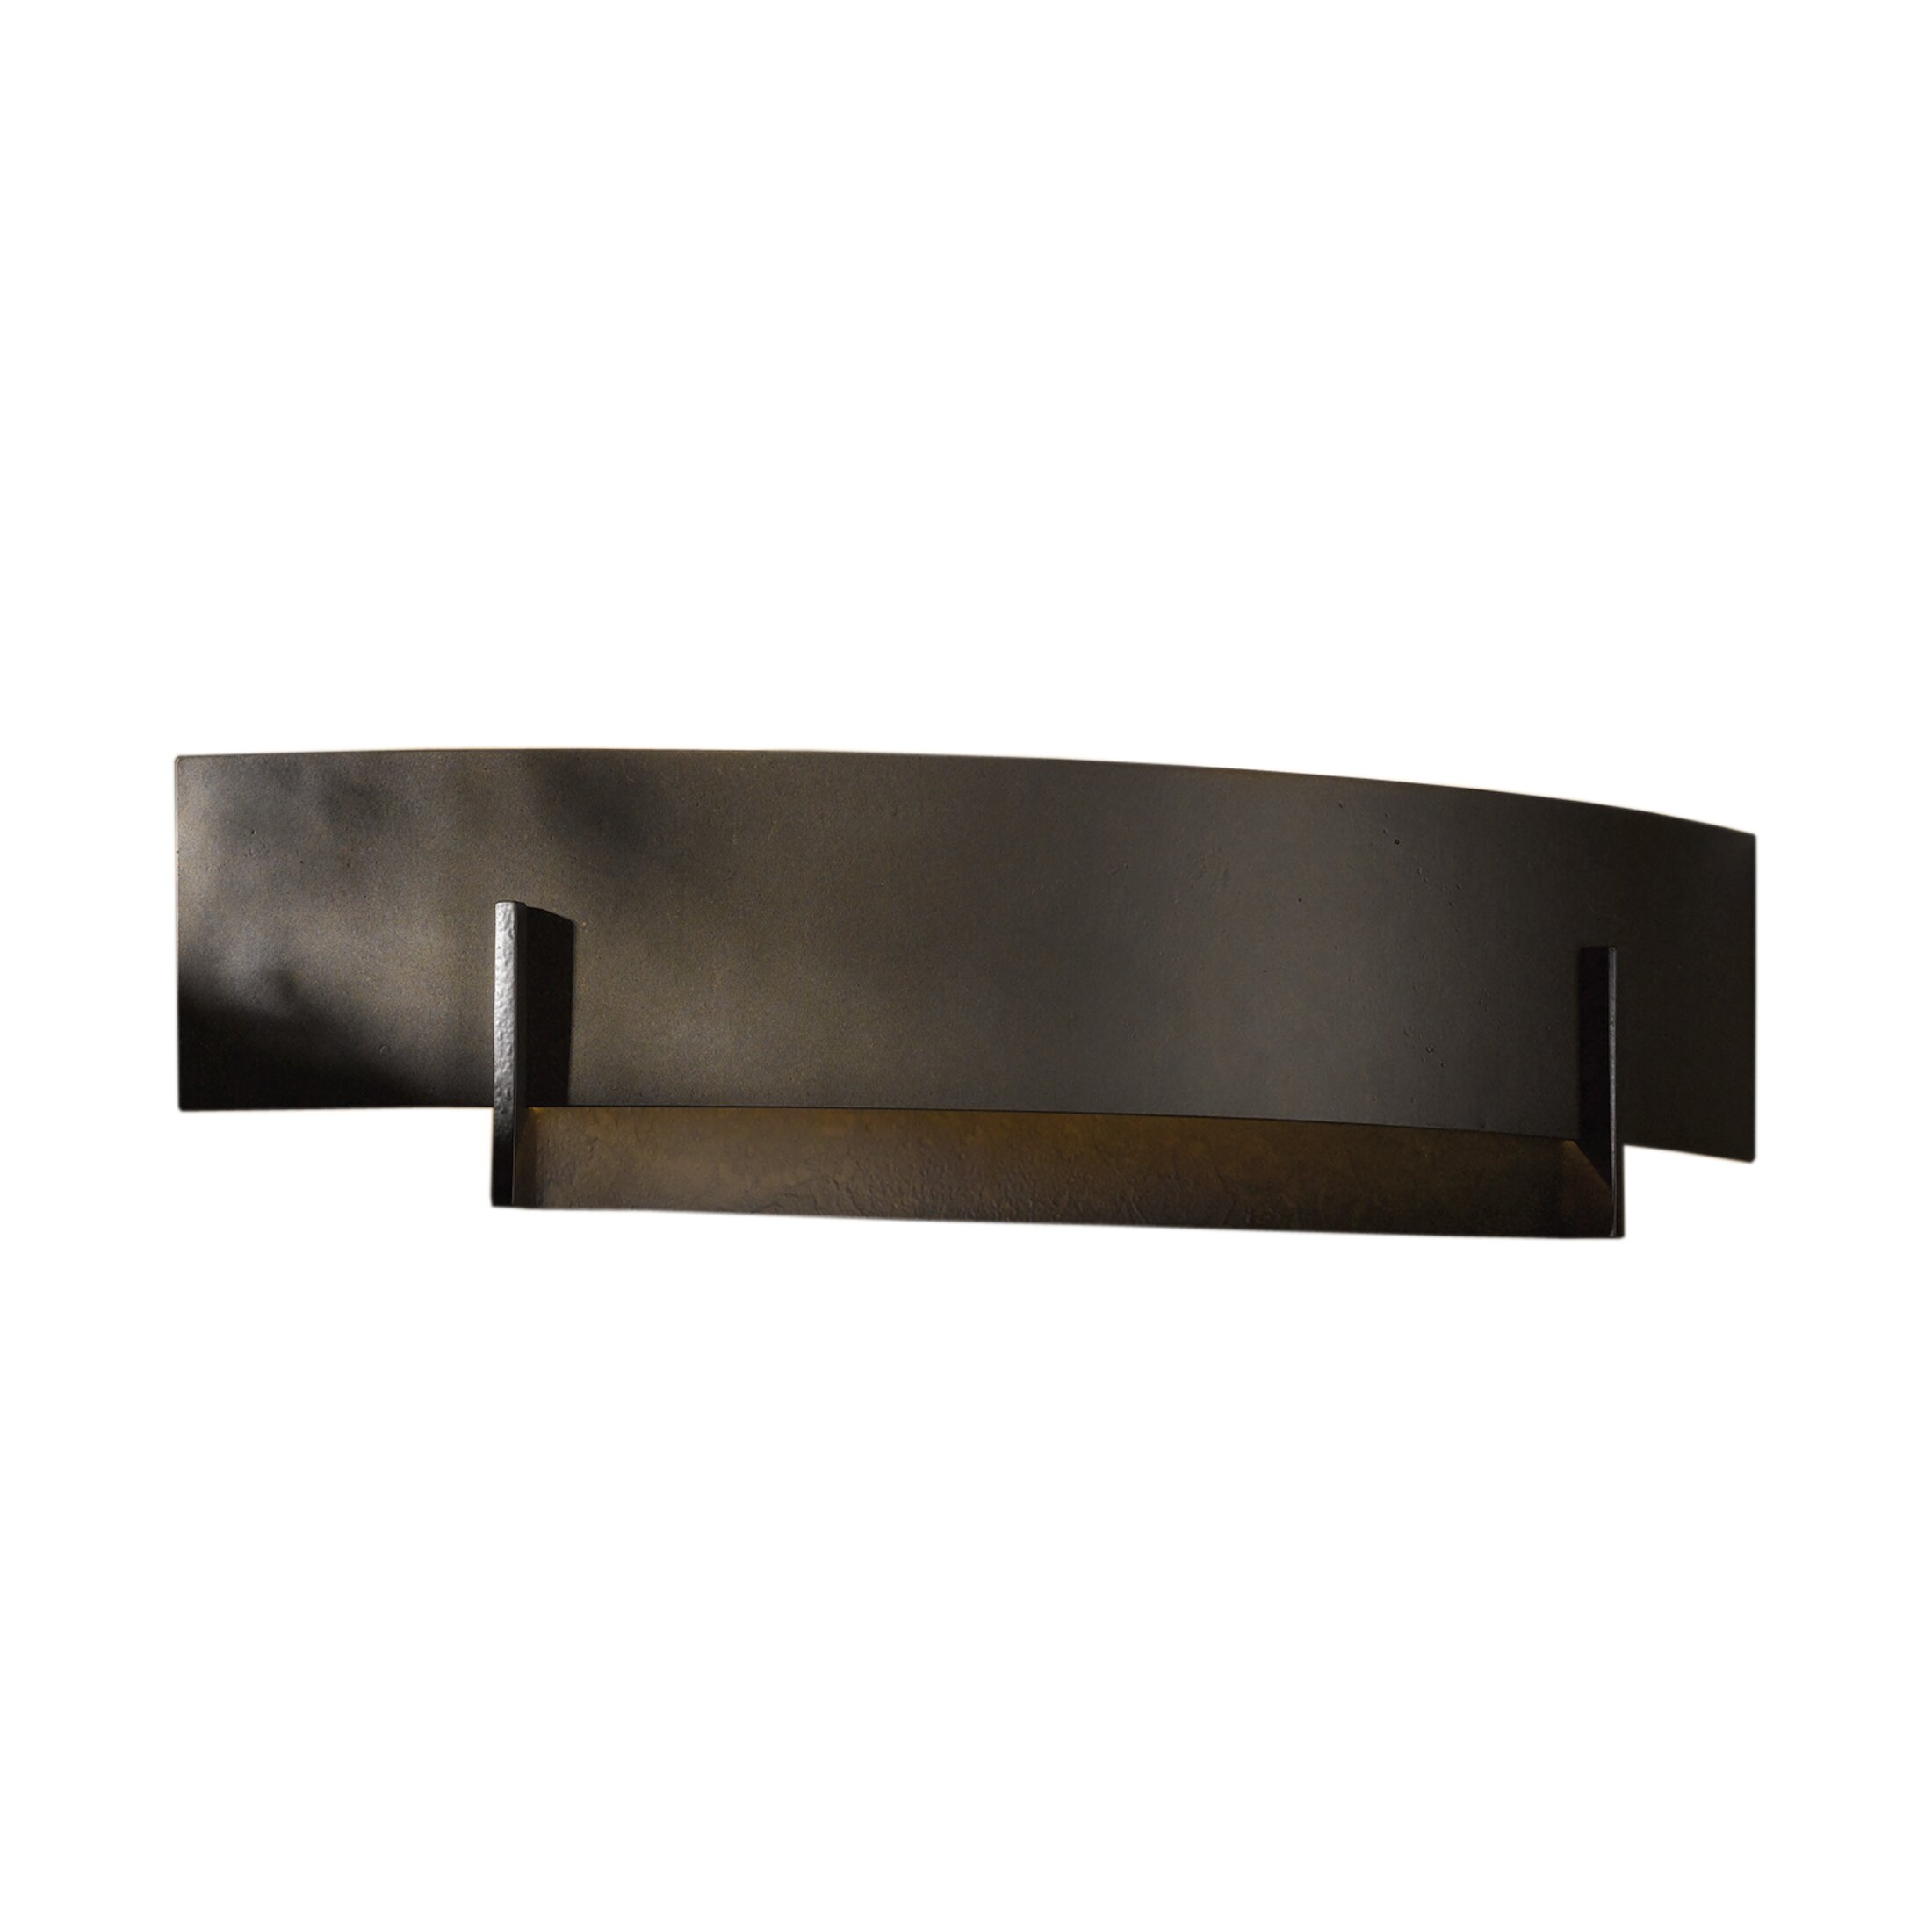 Hubbardton Forge Axis 2 Light Wall Sconce Wayfair